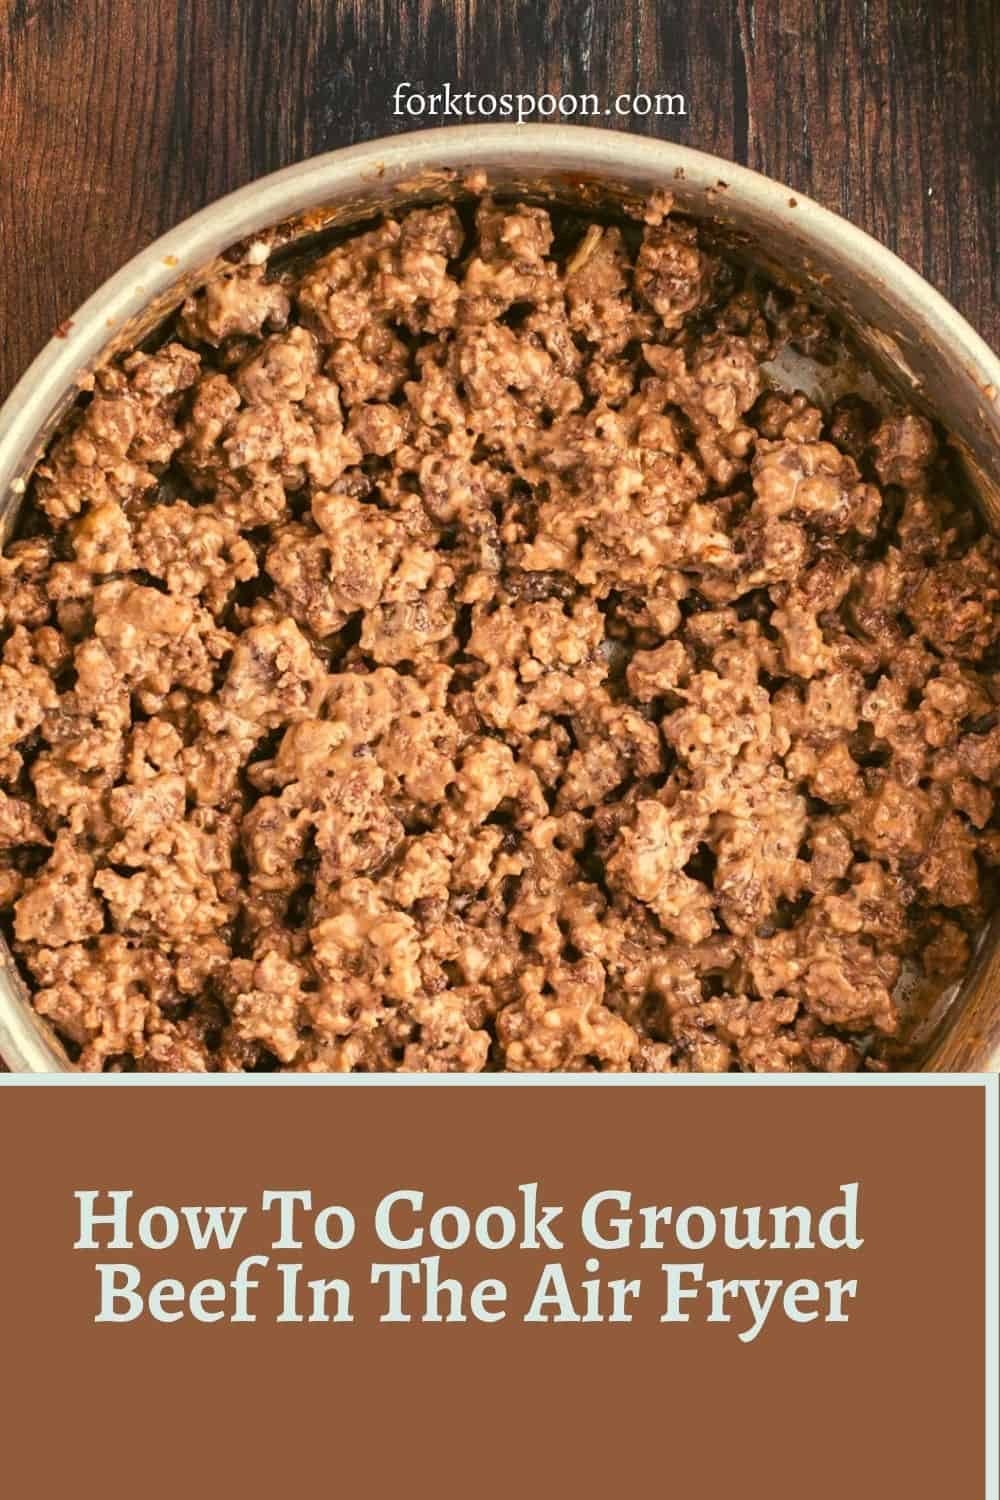 How To Cook Ground Beef In The Air Fryer